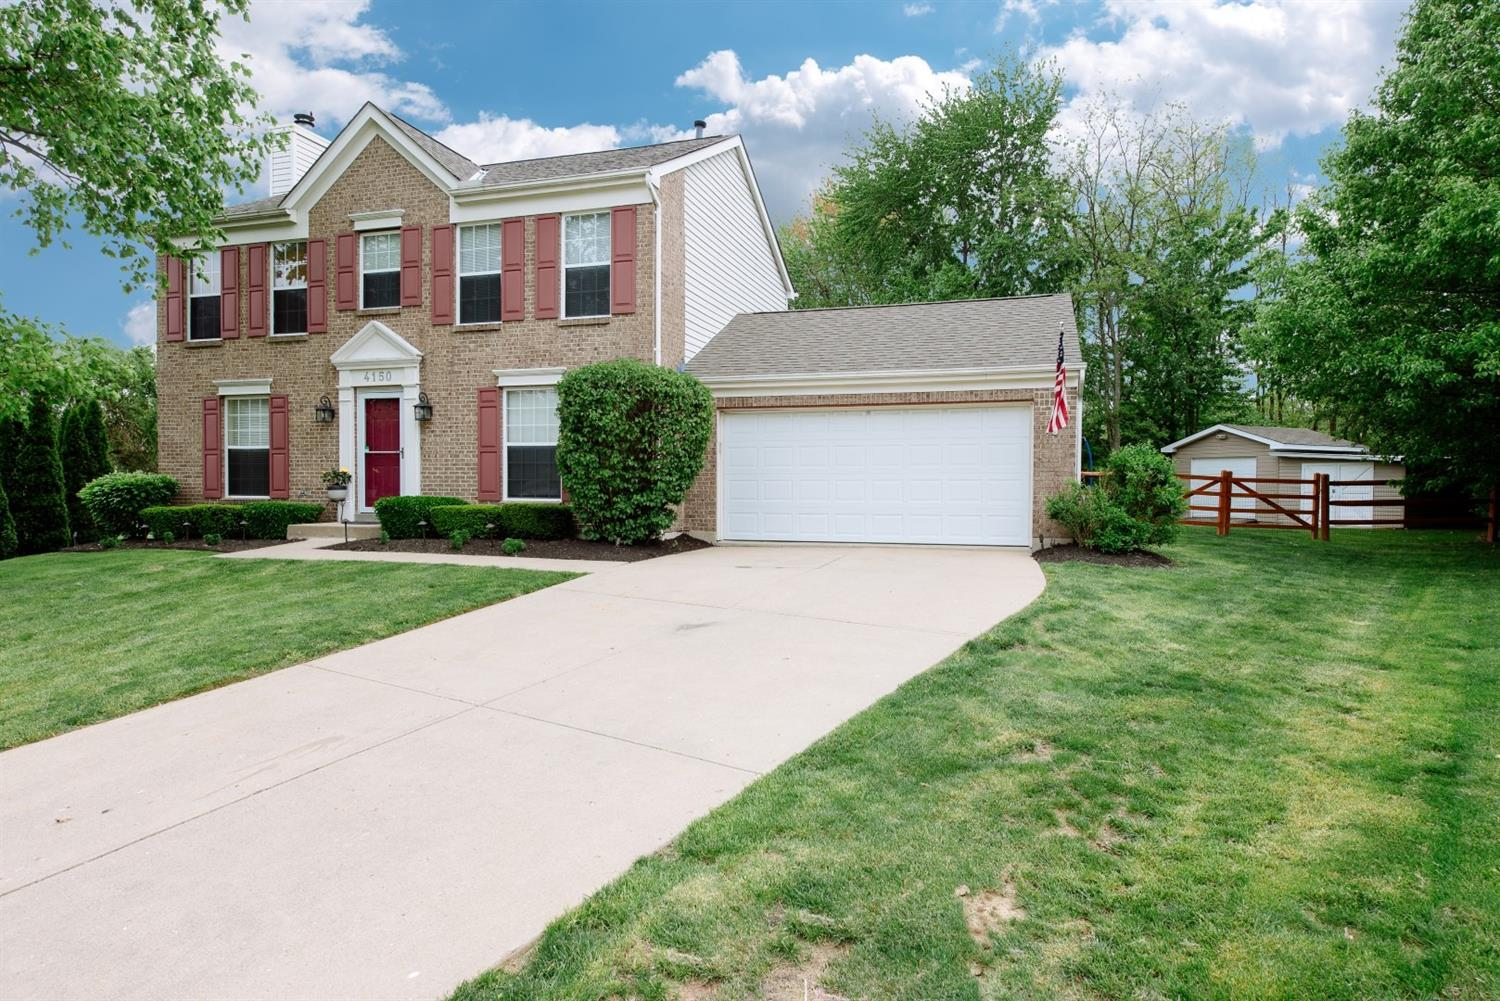 4150 Bettyhill Ln Union Twp. (Clermont), OH